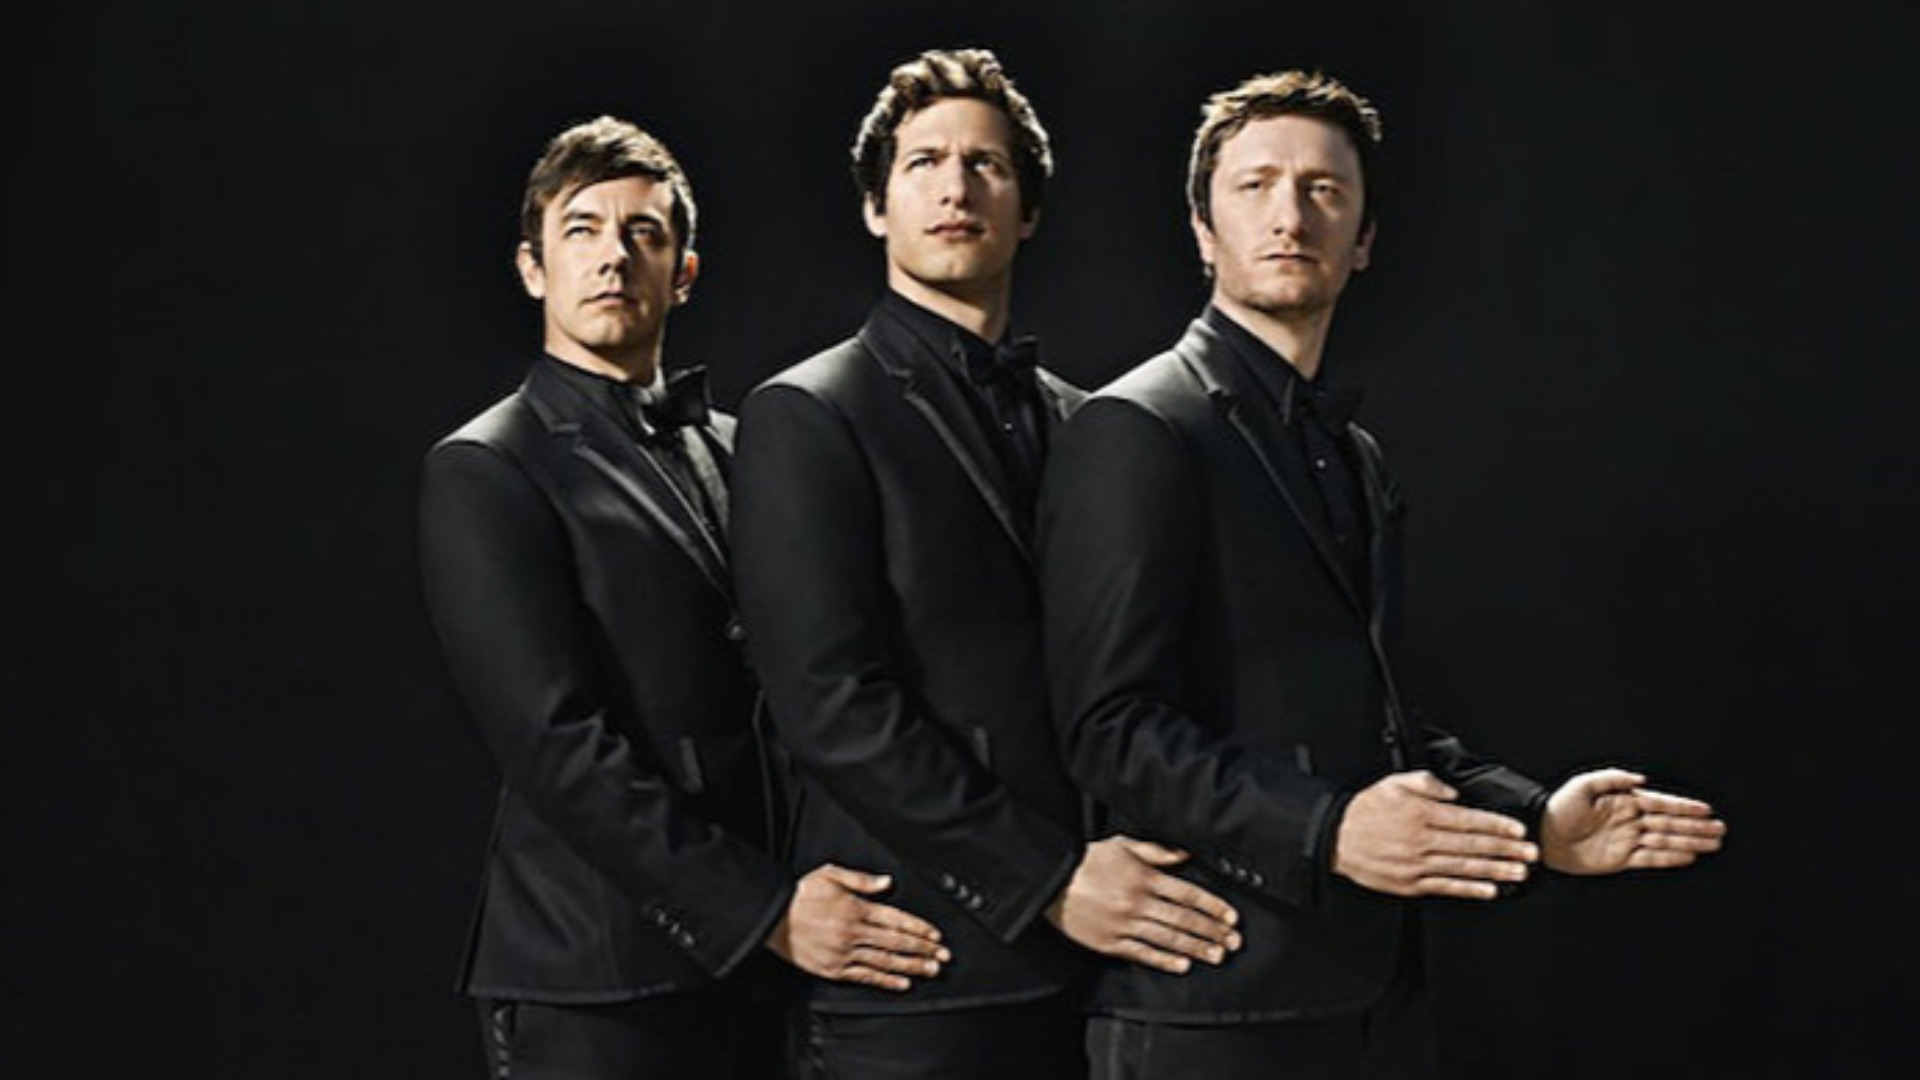 The Lonely Island is an American comedy trio, formed by Akiva Schaffer, Andy Samberg, and Jorma Taccone in Berkeley, California in 2001. The three first met in junior high, and went on to write and feature in the American TV program Saturday Night Live (SNL).The Lonely Island